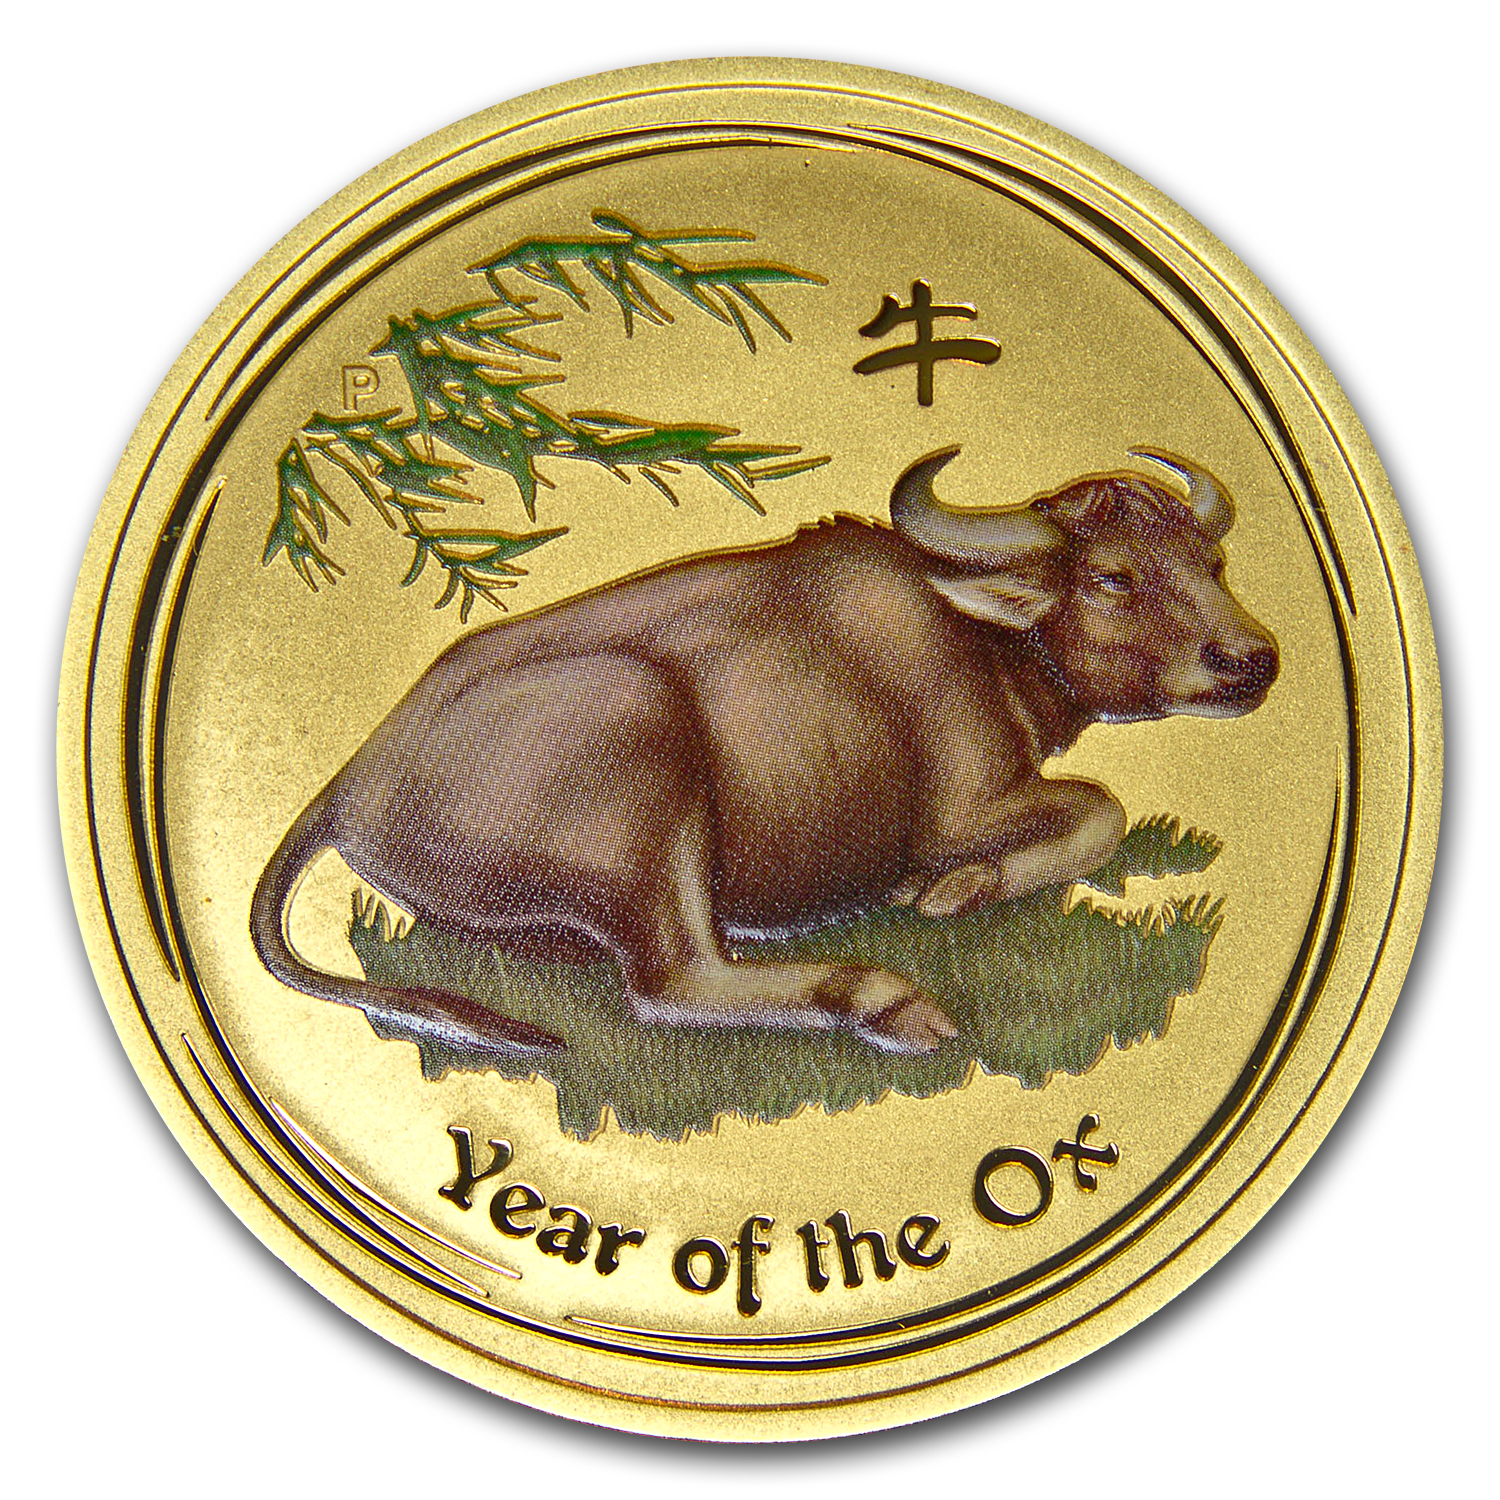 2009 1 oz Gold Lunar Year of the Ox (Series II) (Colorized)